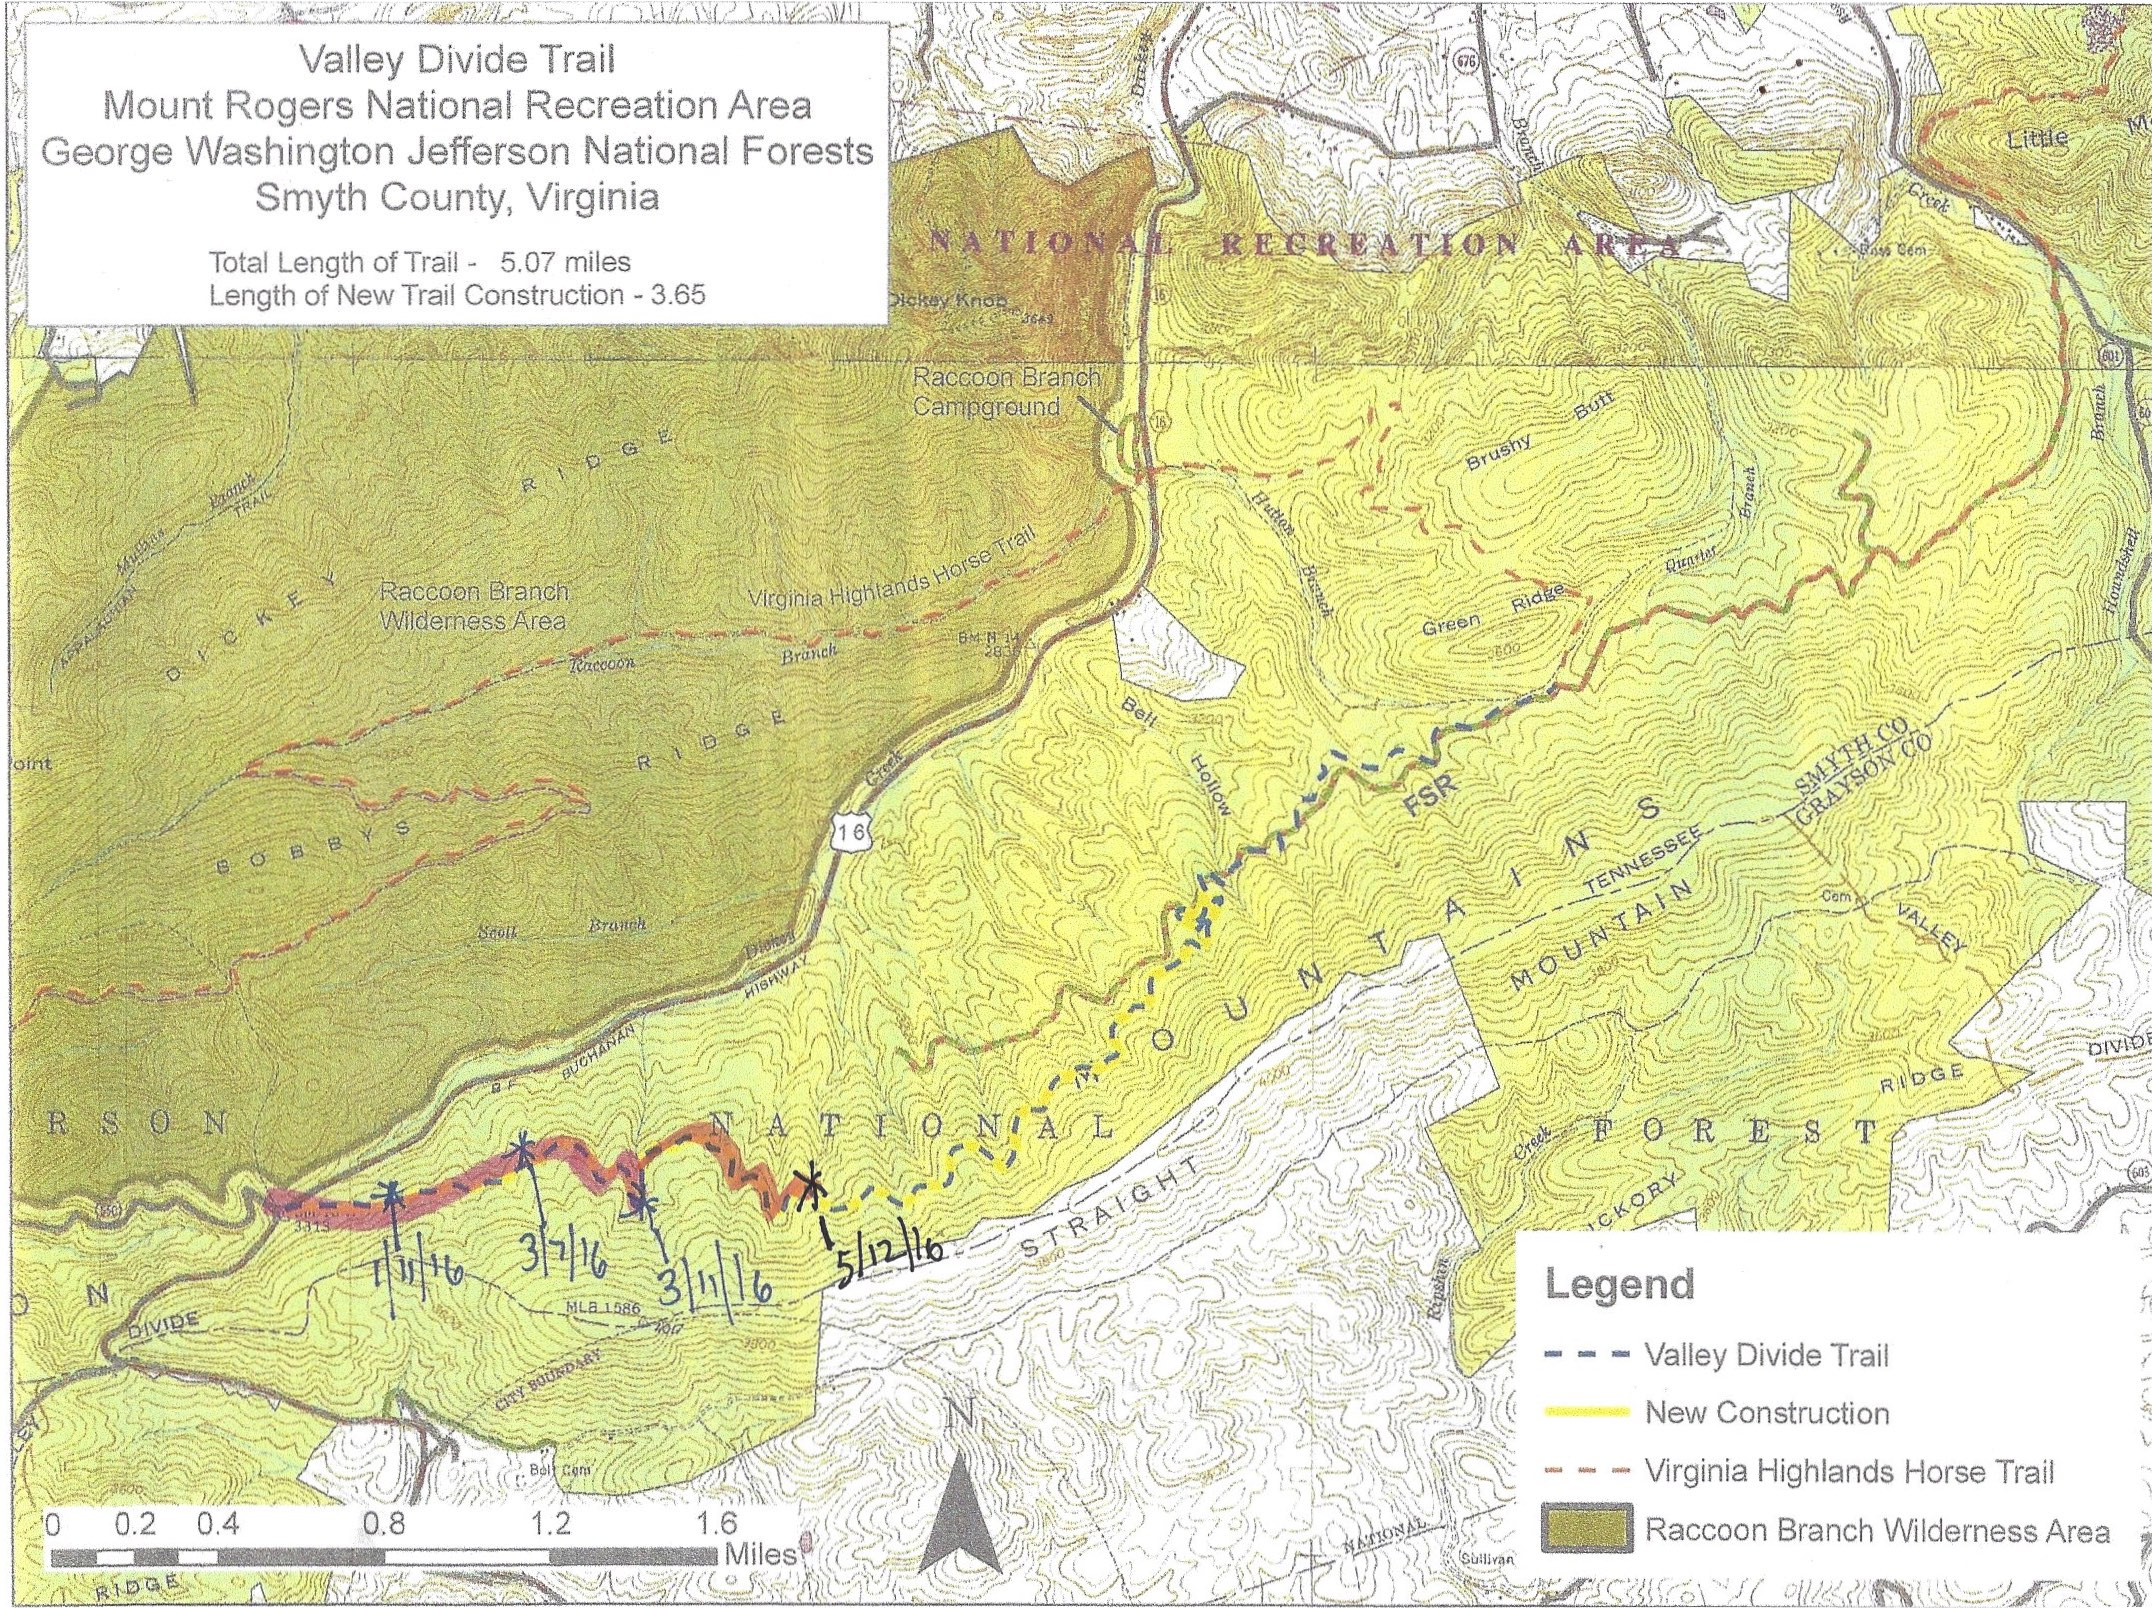 Our progress working on the proposed Valley Divide Trail